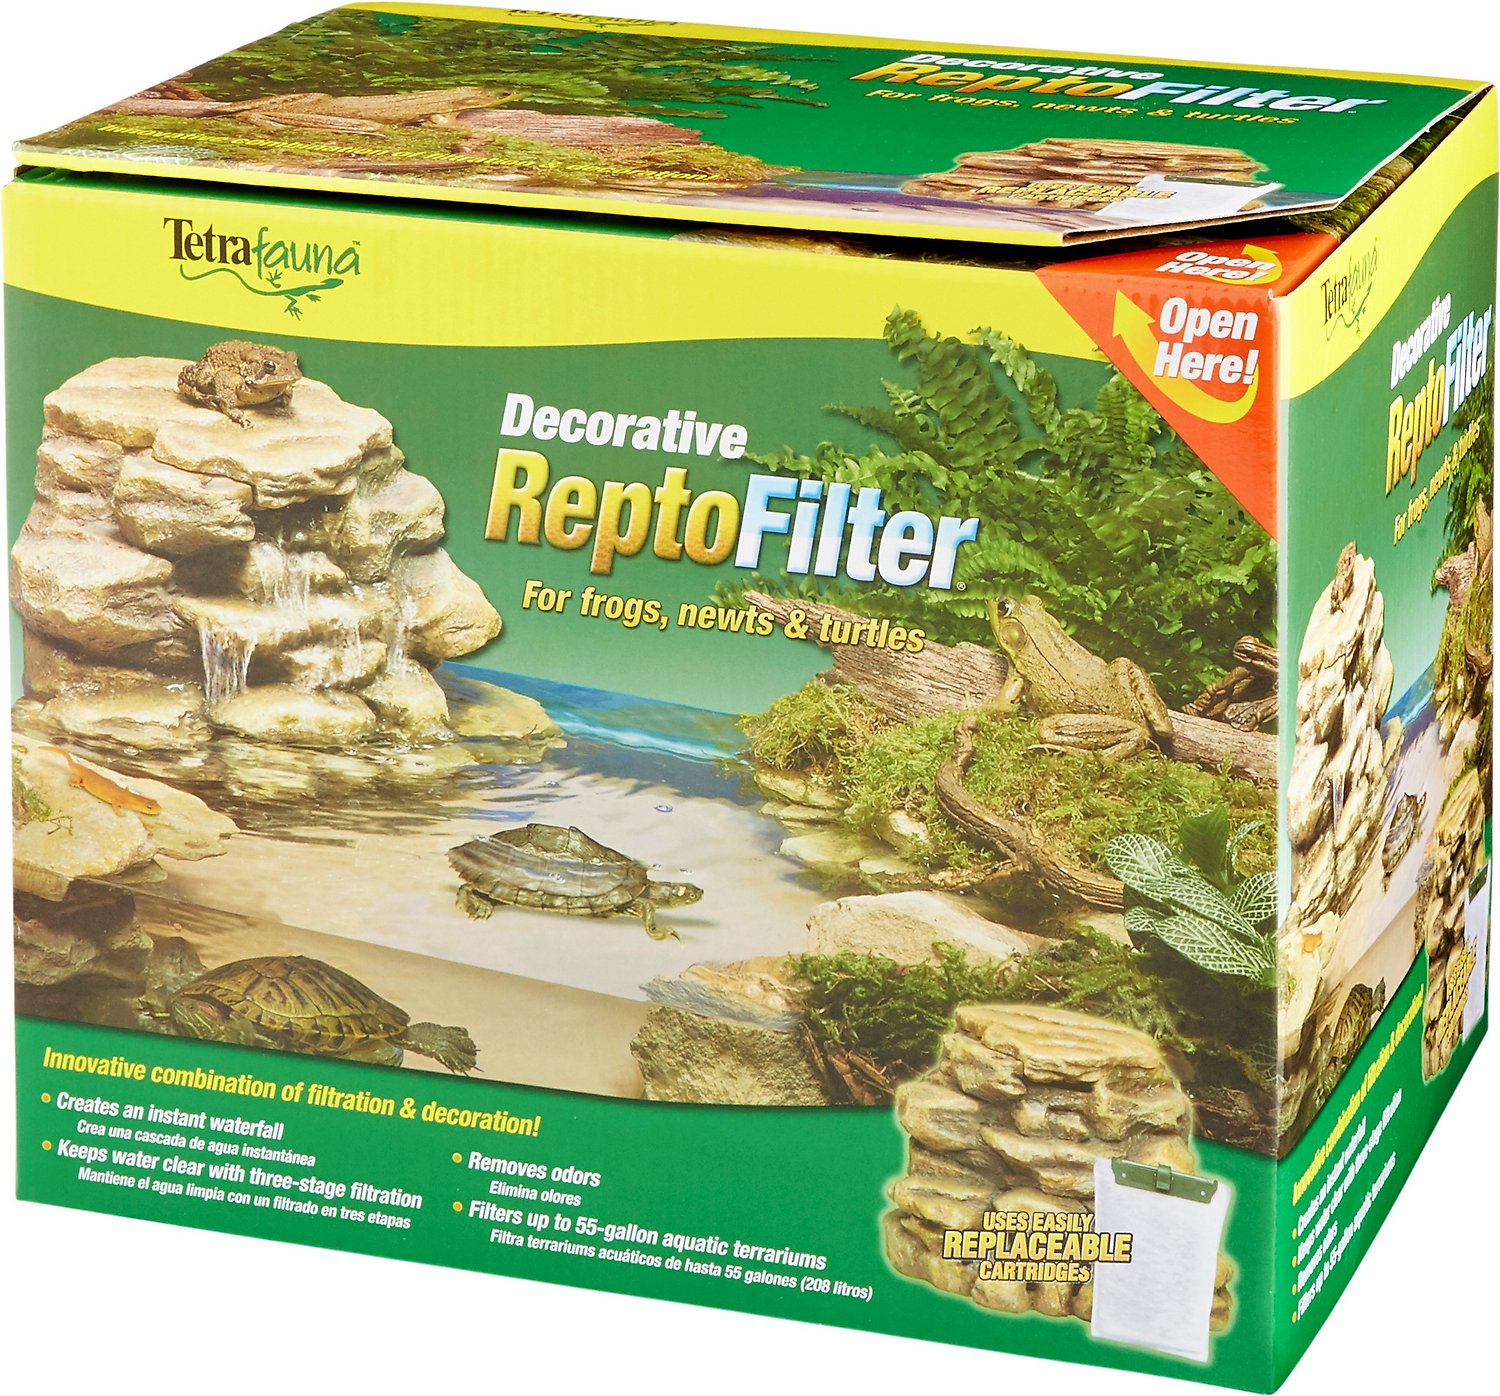 Tetrafauna Decorative ReptoFilter for Frogs, Newts & Turtles, 55-gal